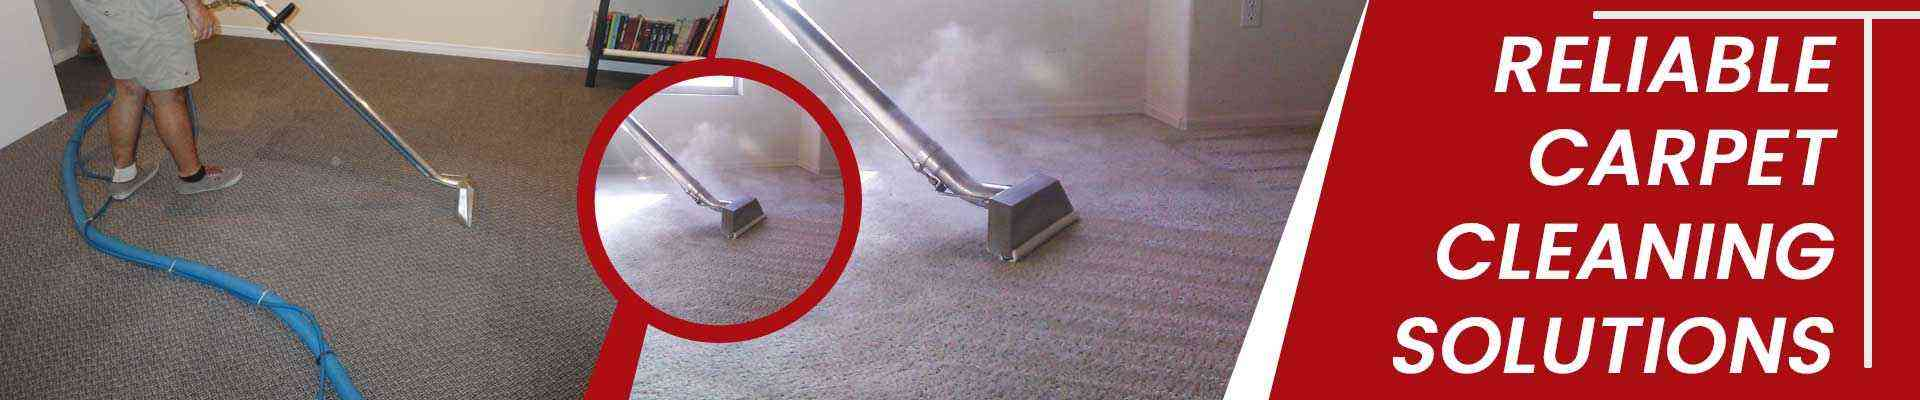 Carpet Cleaning Macquarie Park